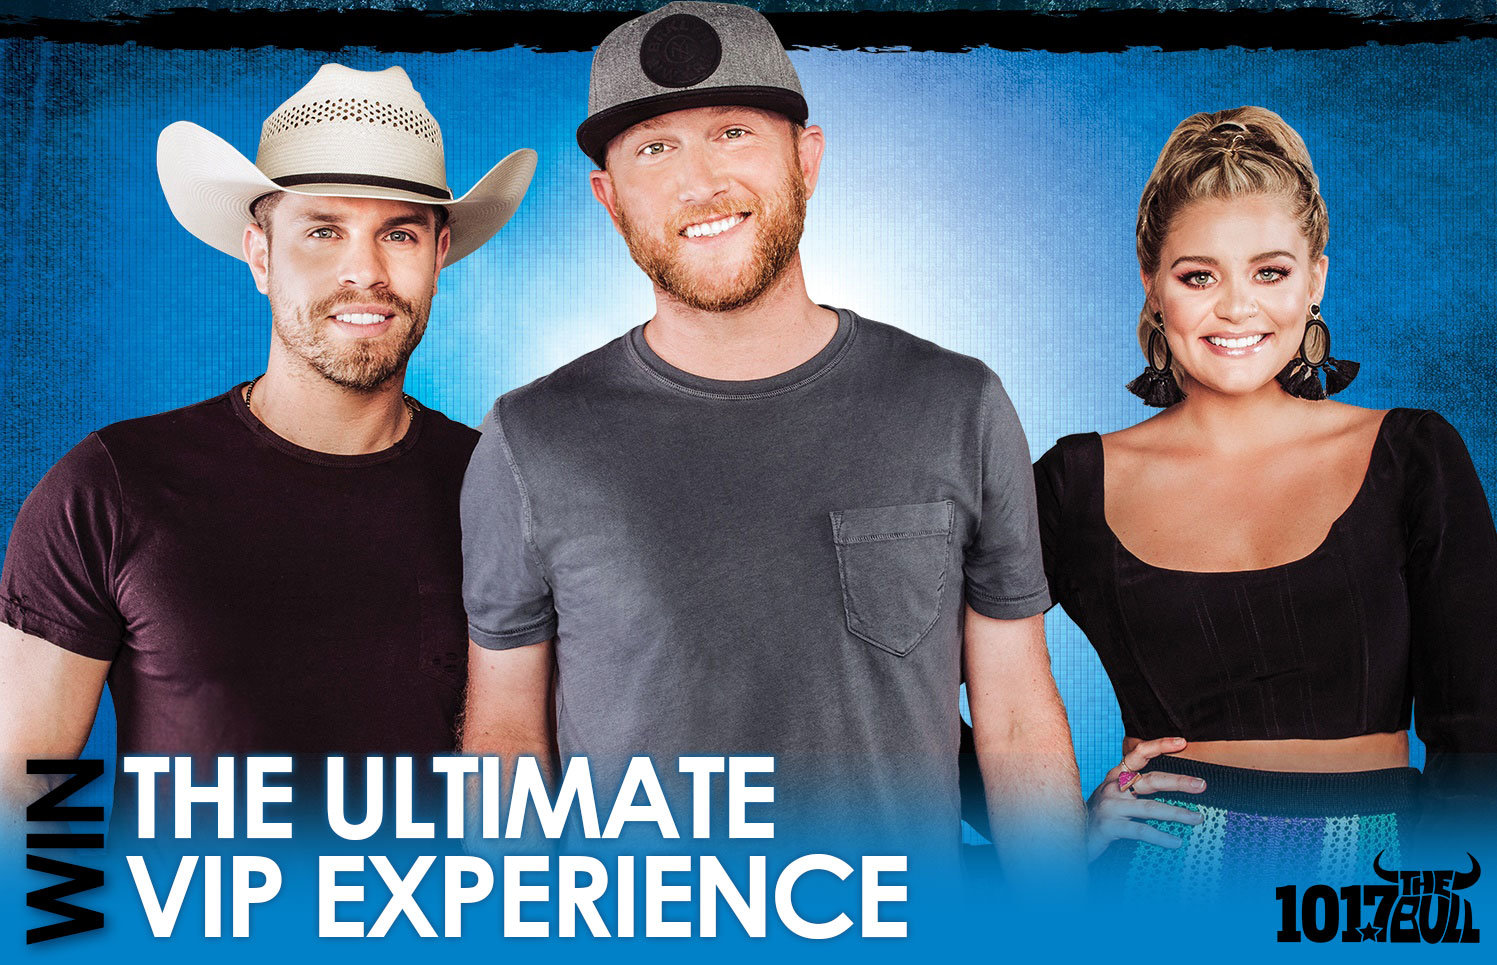 Win the ultimate cole swindell dustin lynch vip experience 1017 cole swindell dustin lynch are headed to the dcu center with special guest lauren alaina this friday night october 12th and we want to give you a m4hsunfo